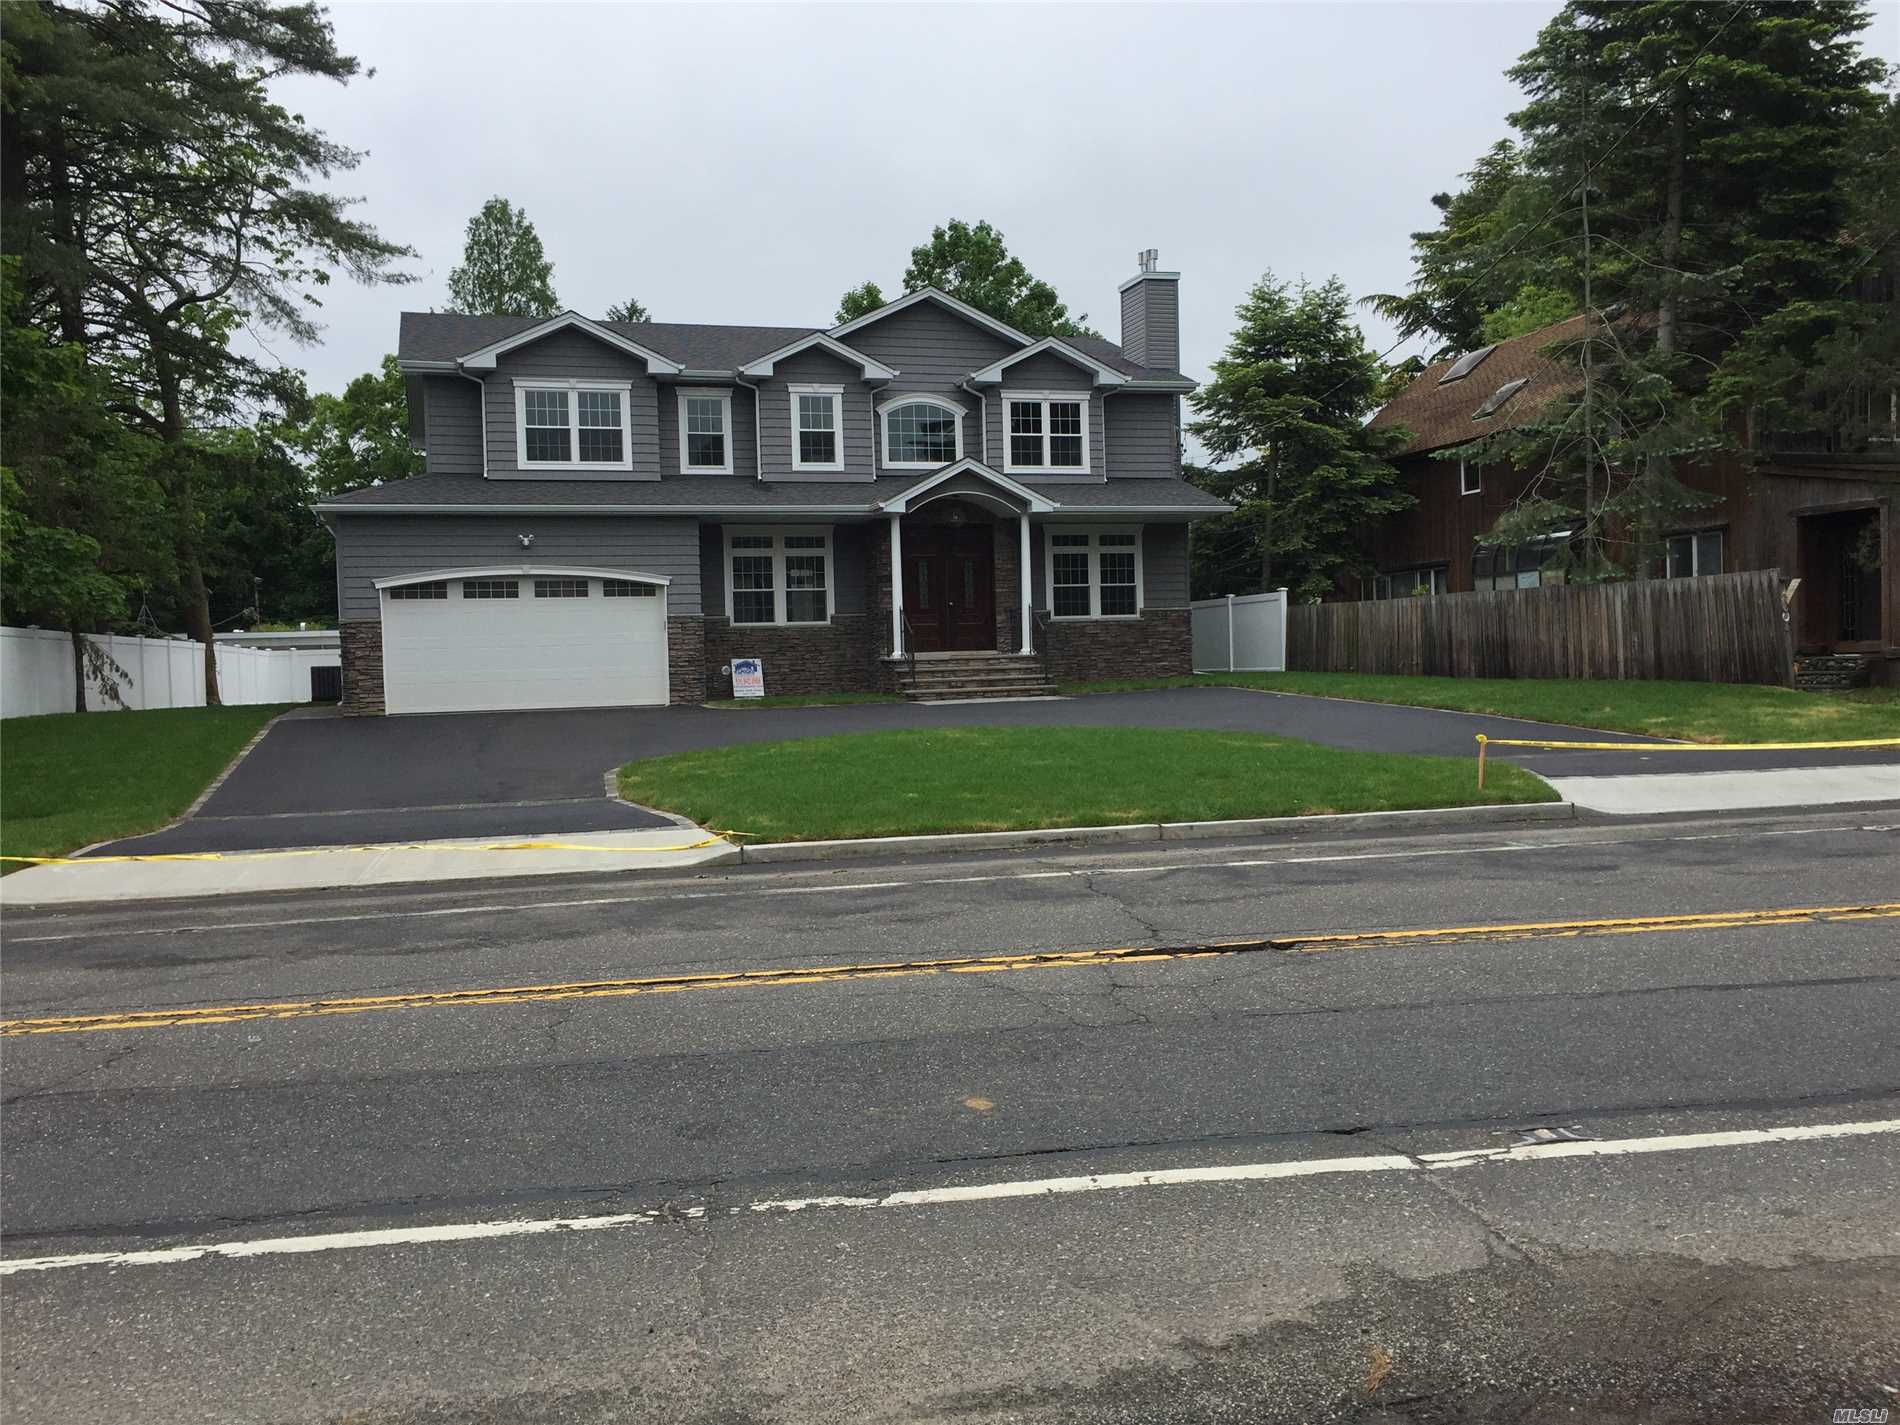 143 Berry Hill Rd - Syosset, New York